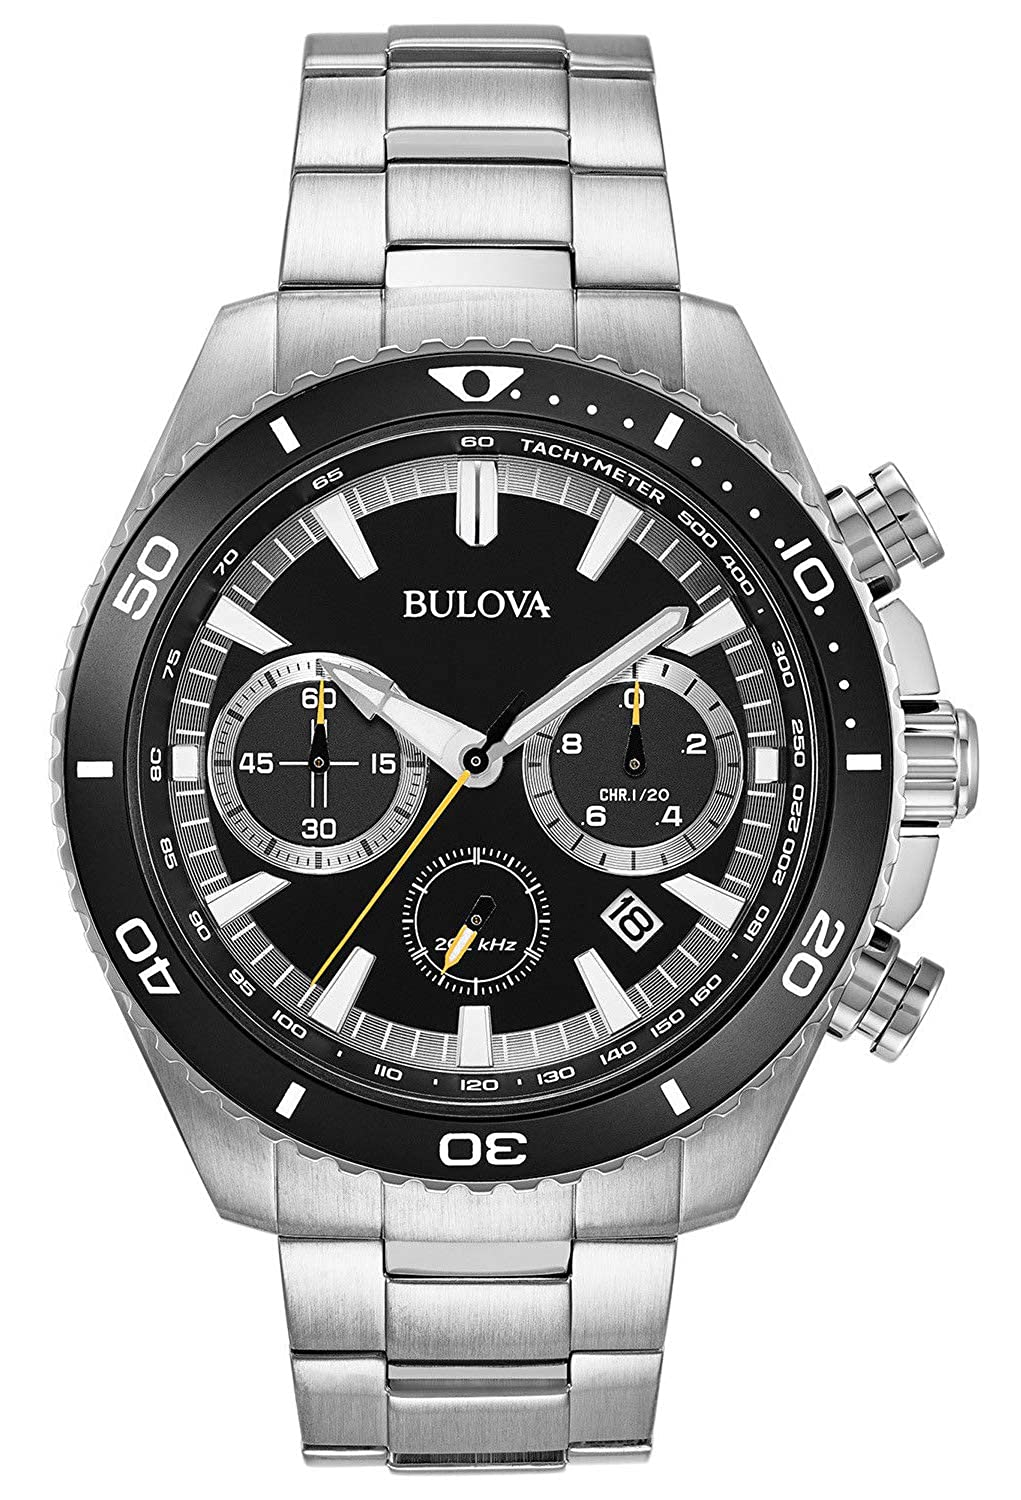 Amazon.com: Bulova High Frequency Quartz Chronograph Silver Tone Mens Watch 98B298: Watches